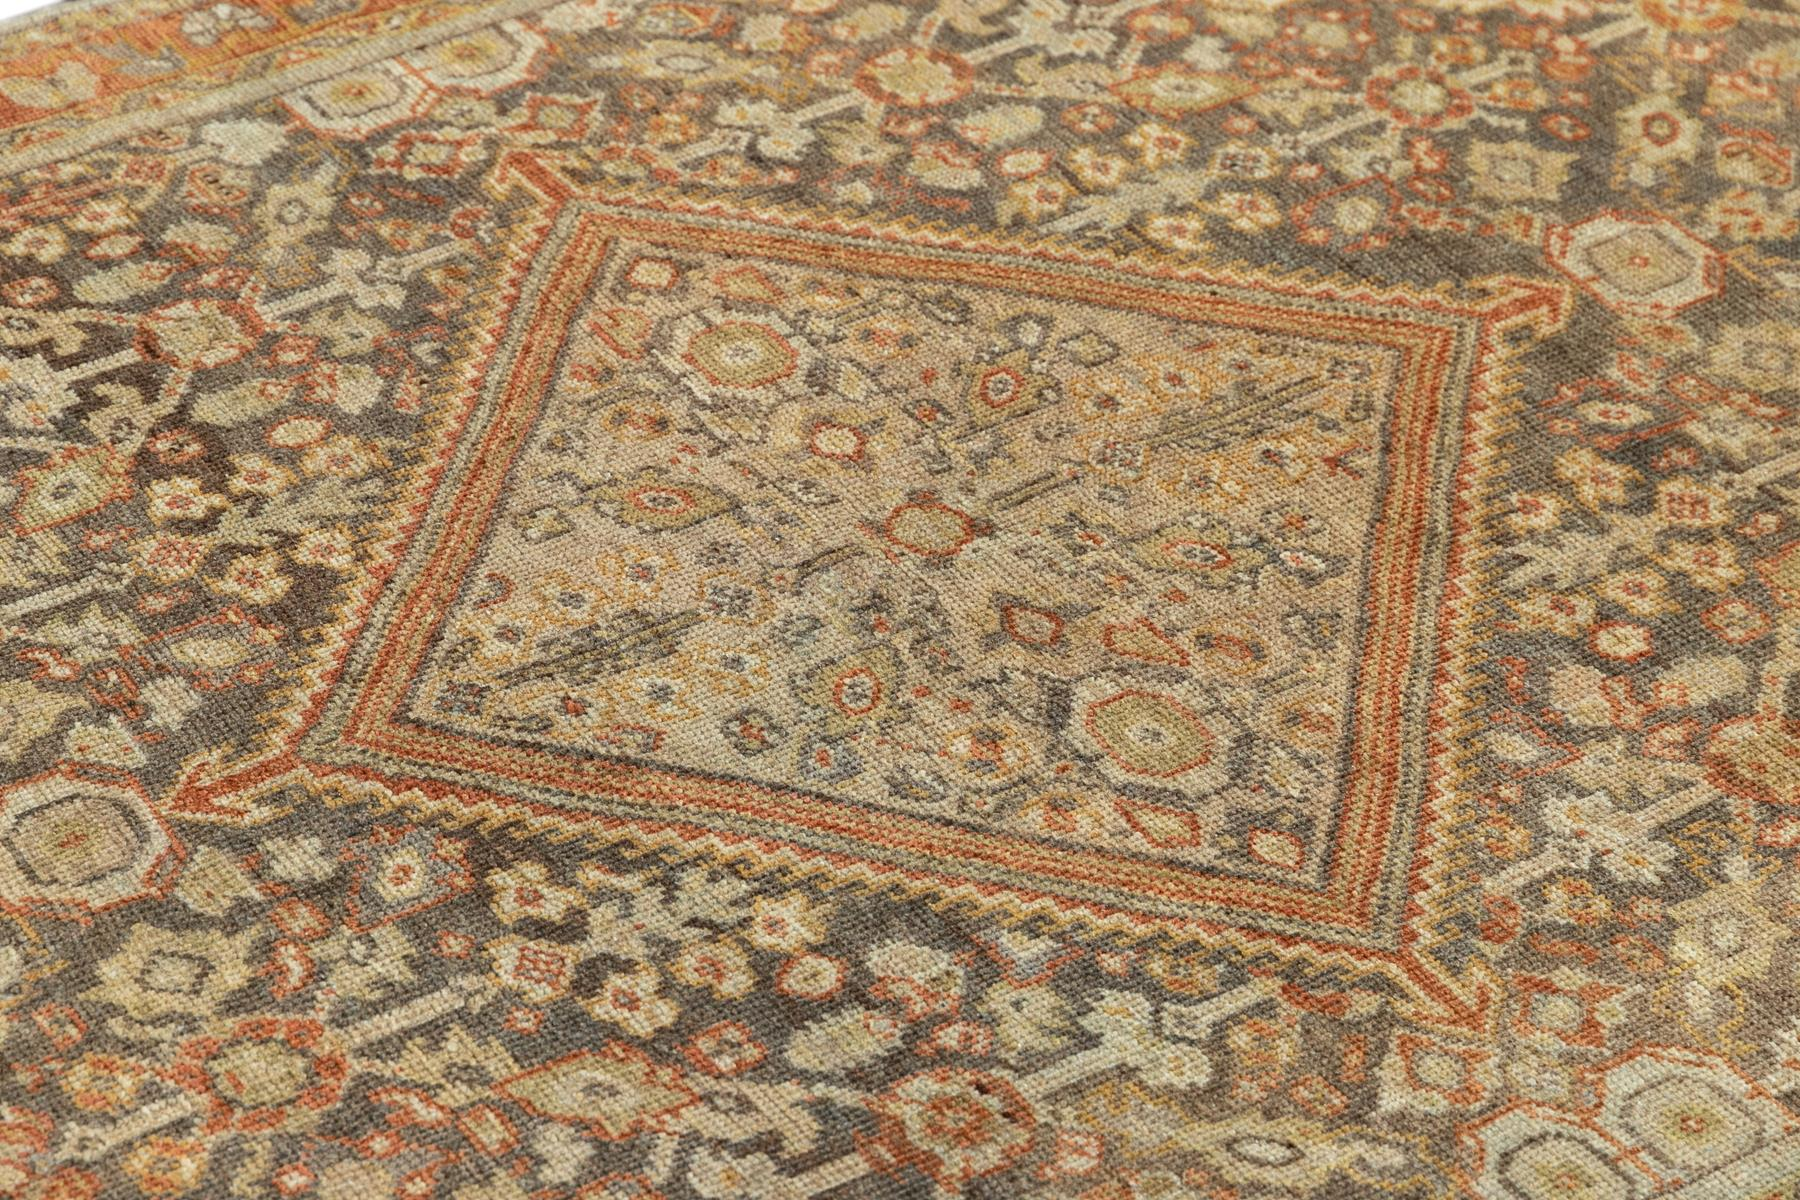 Antique Mahal Rug, #10235264, 5' x 7'